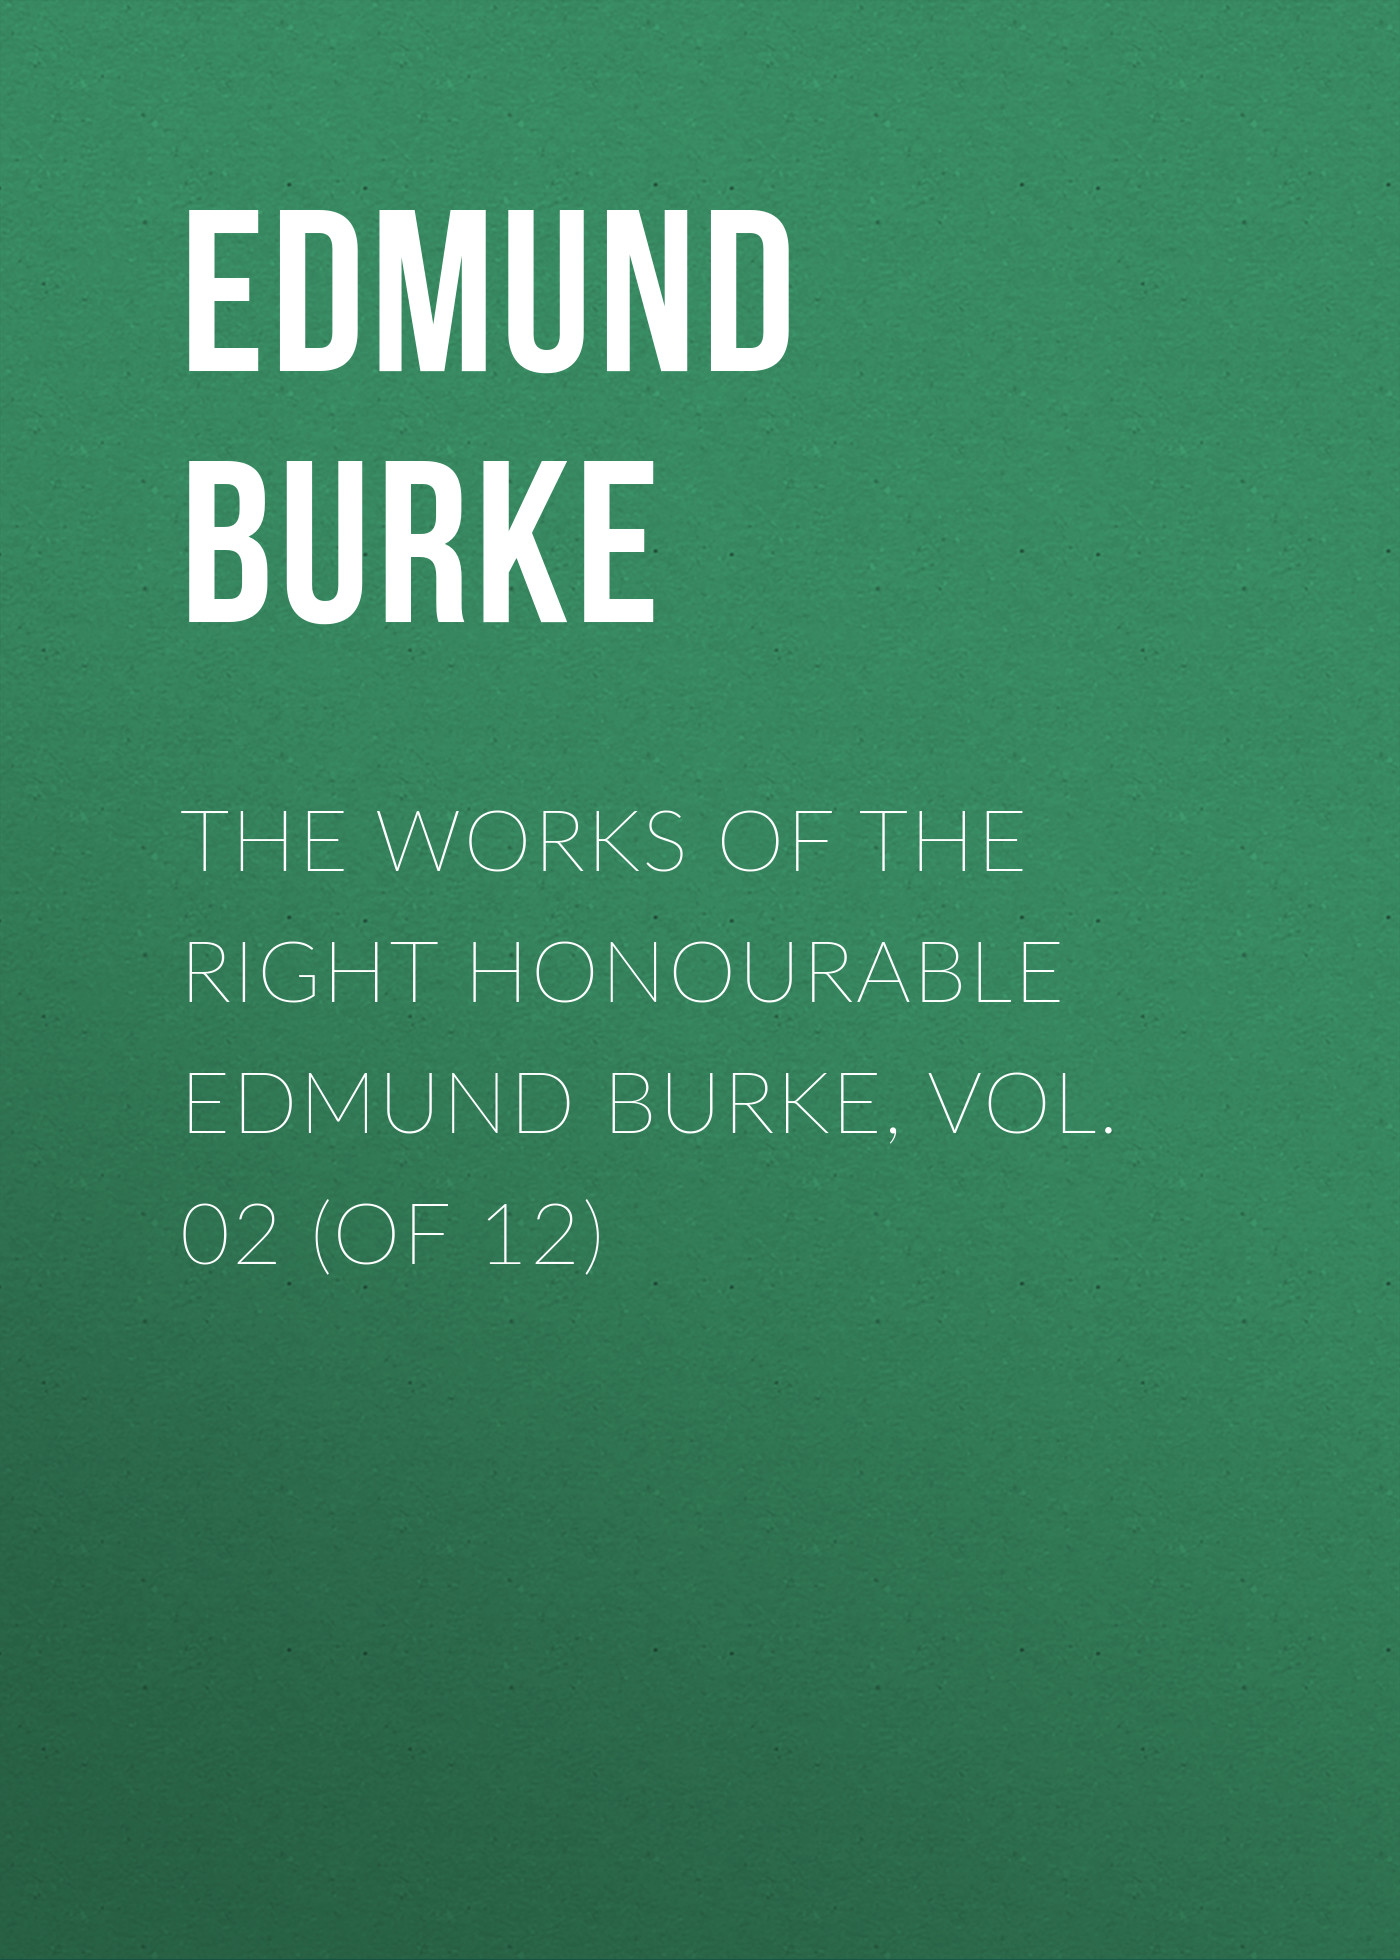 Edmund Burke The Works of the Right Honourable Edmund Burke, Vol. 02 (of 12) edmund burke the works of the right honourable edmund burke vol 02 of 12